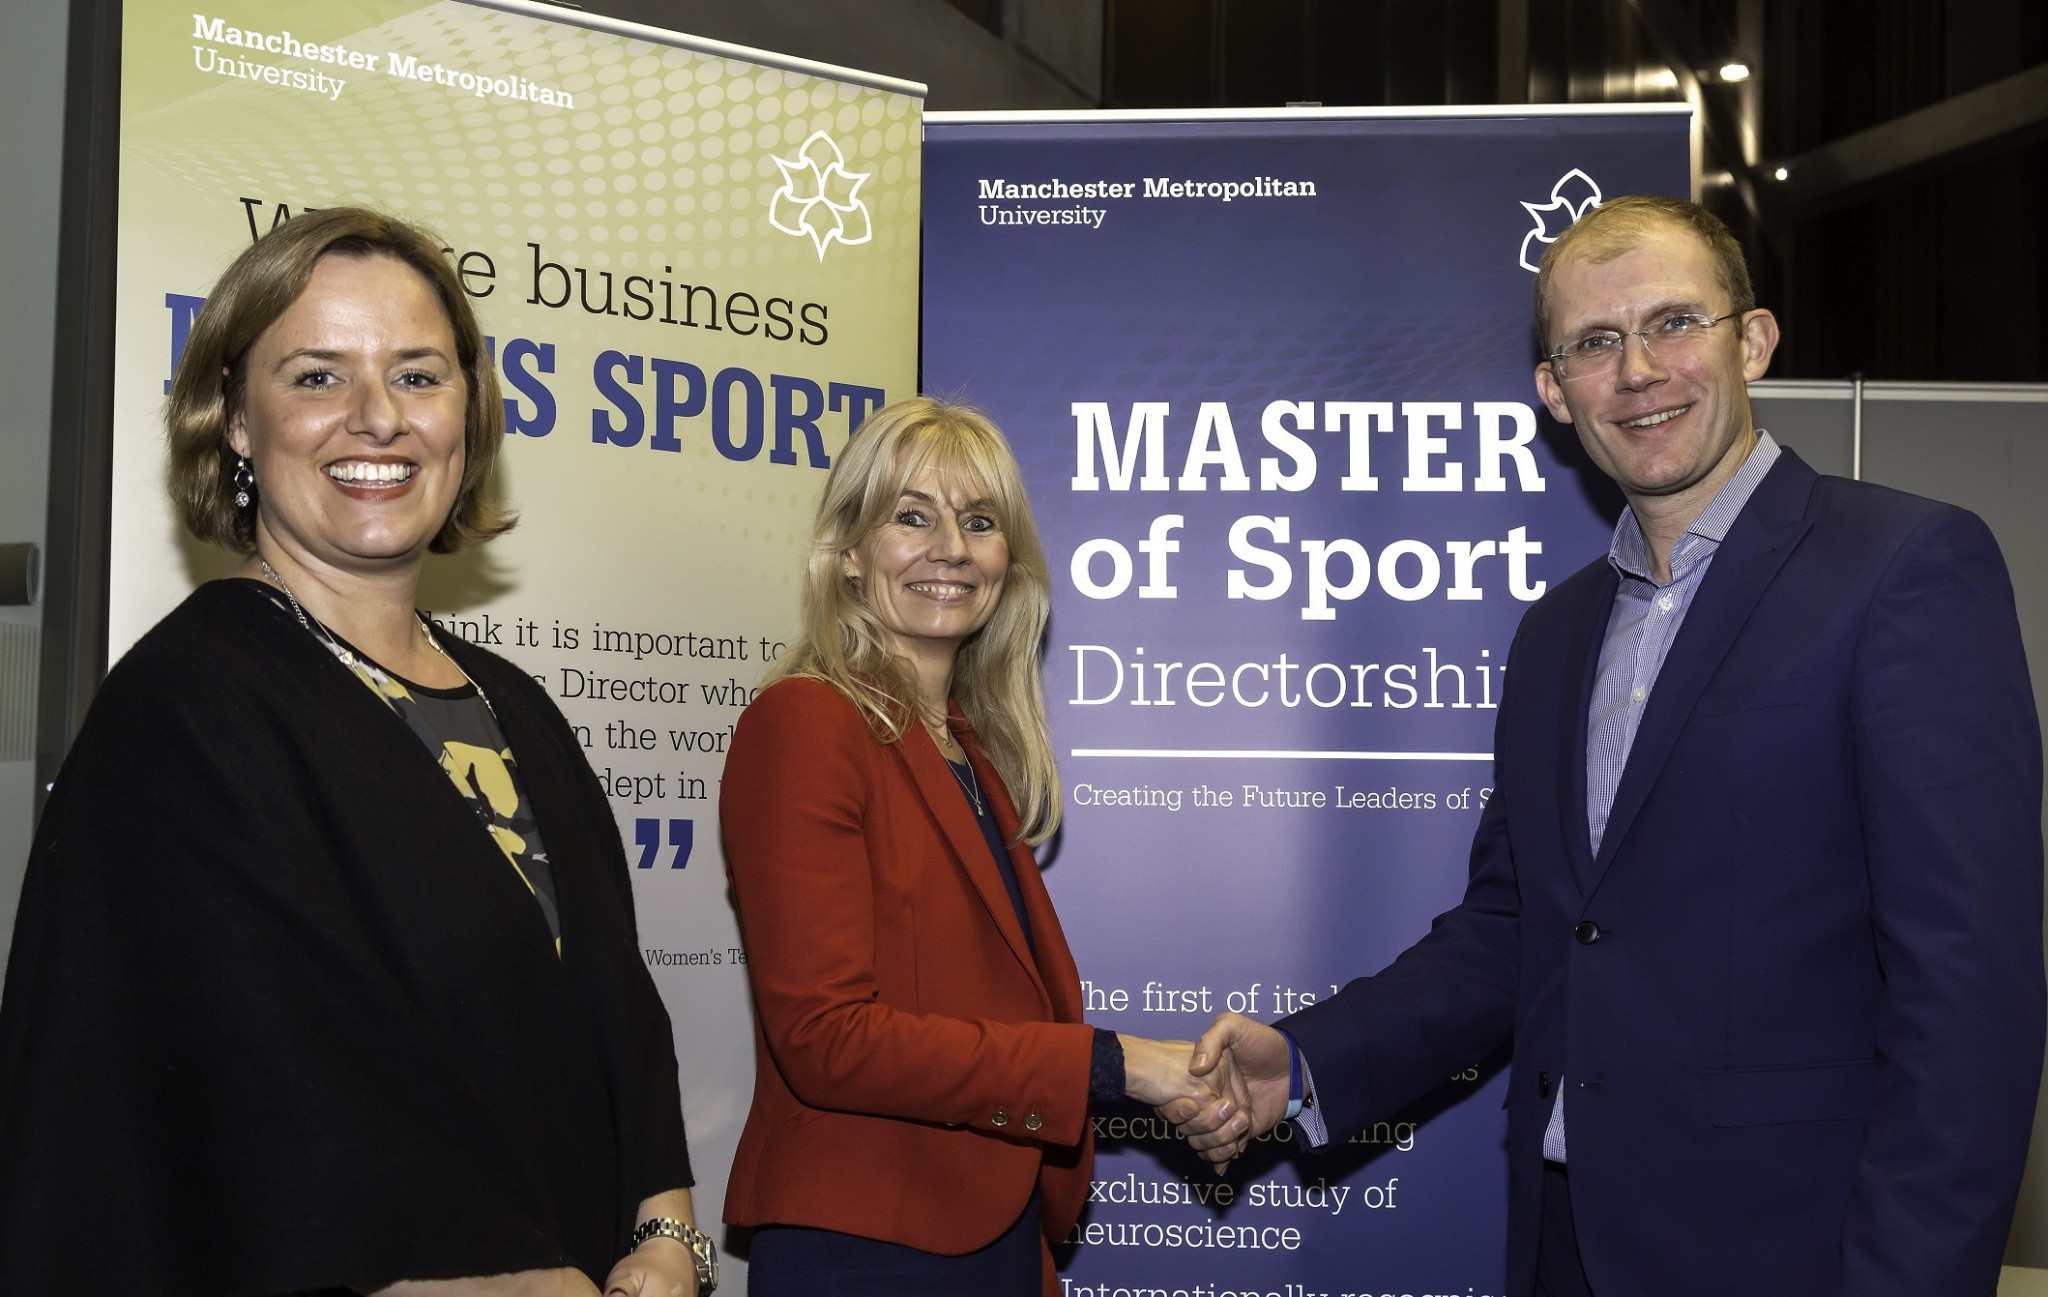 The RFL has commissioned Manchester Metropolitan University Business School to develop a purpose-built leadership development programme that it hopes will improve governance among its management team ©Appeal PR